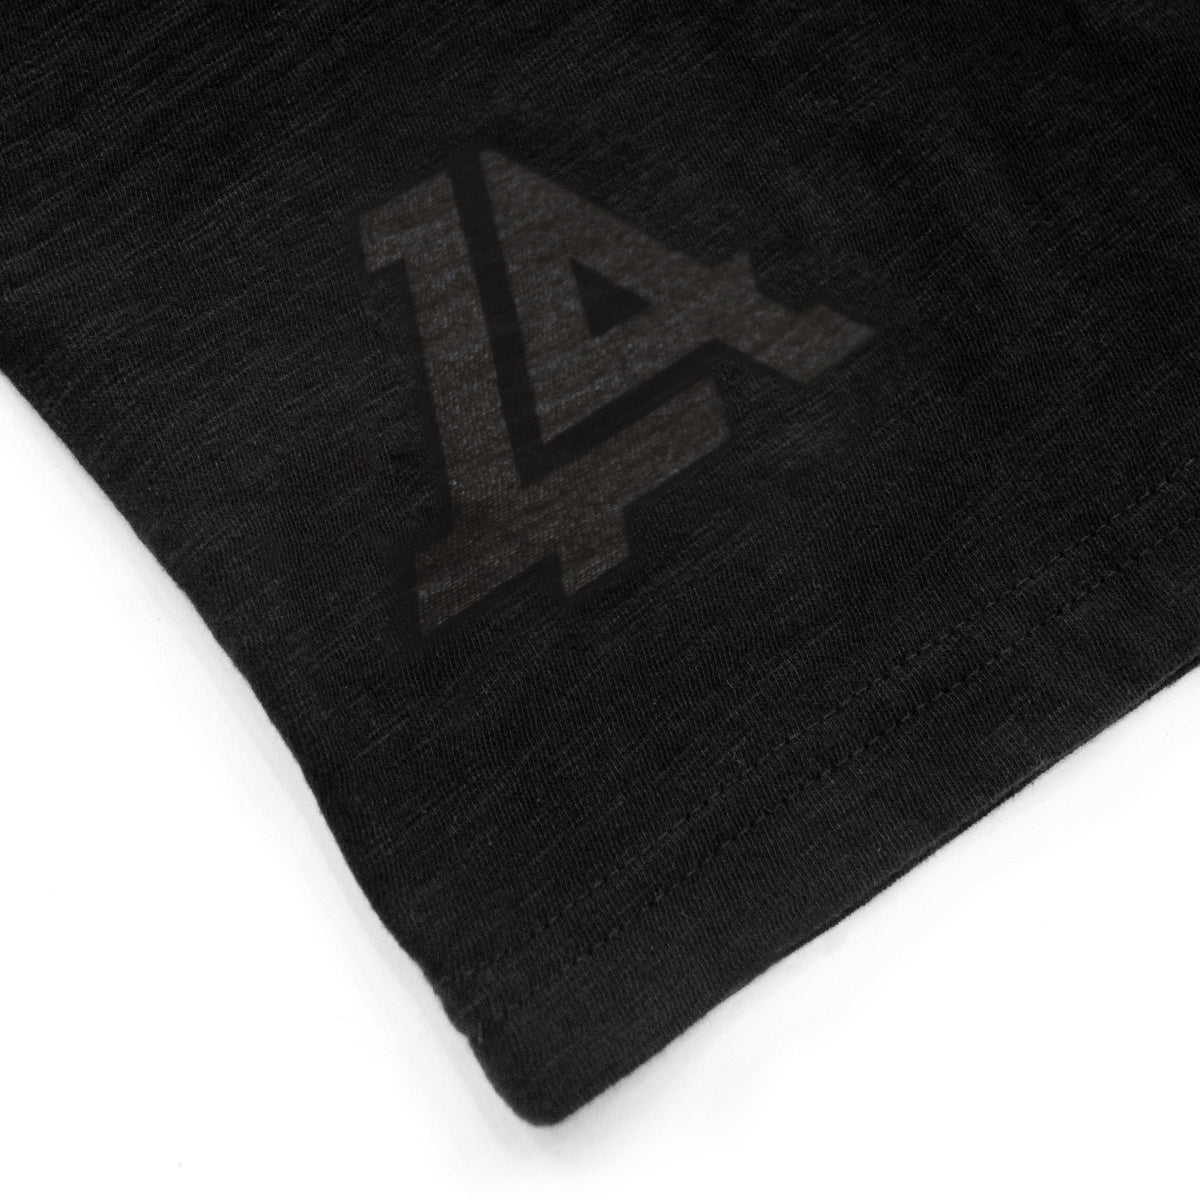 Lost Art Canada - black on black lost monogram tee back logo view